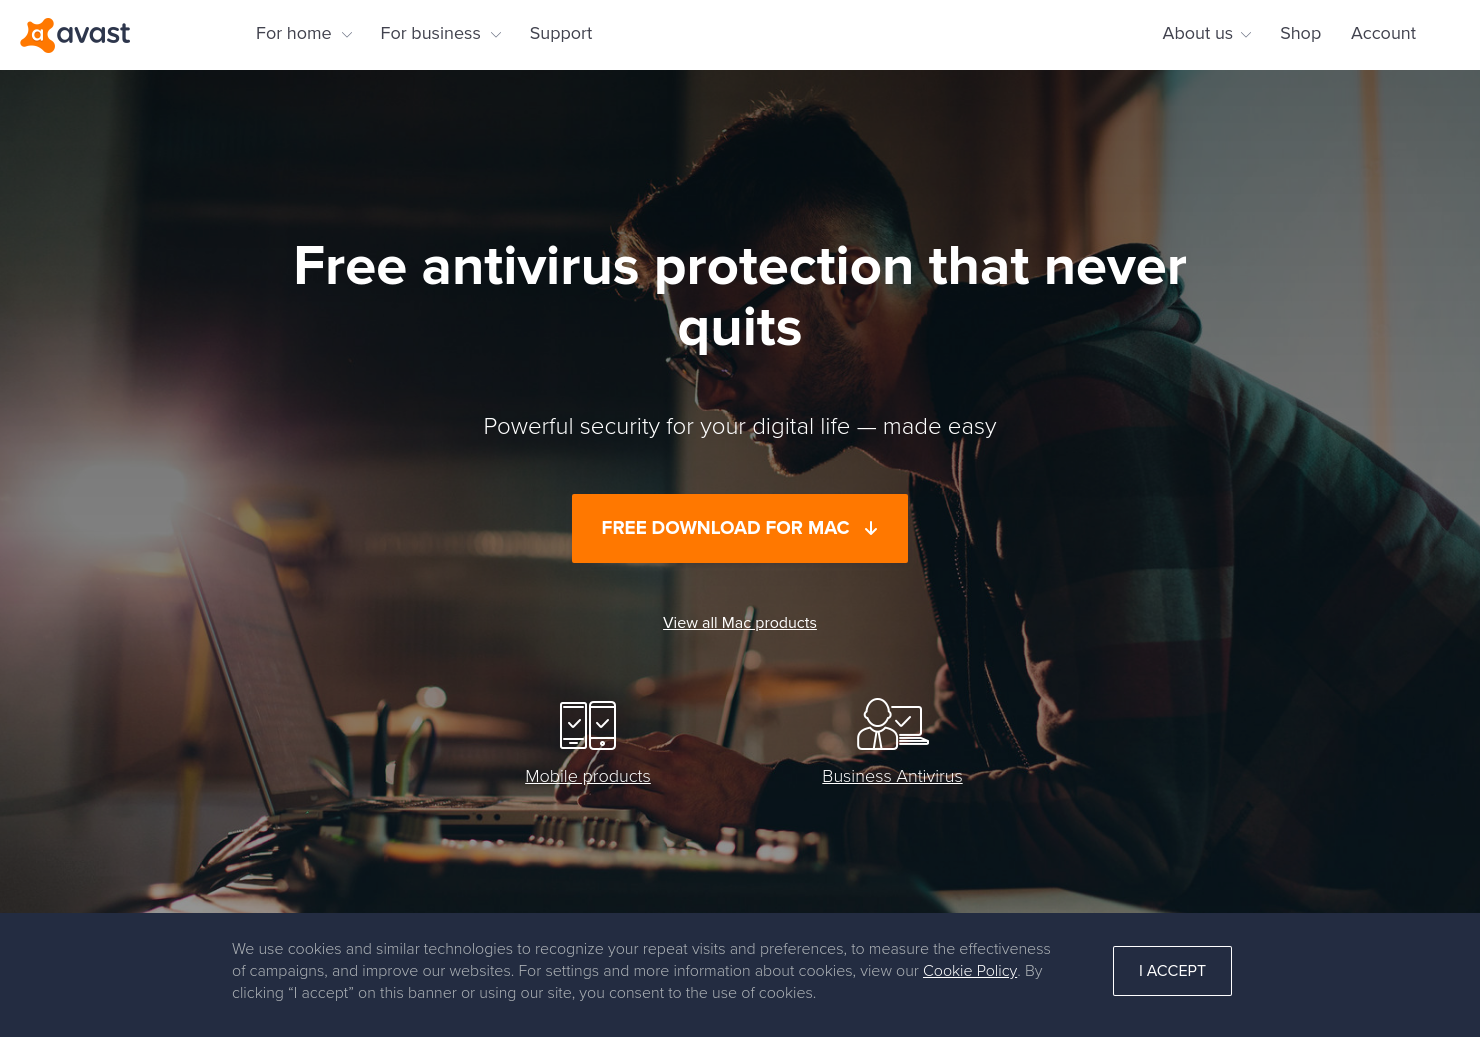 Avast Home Page